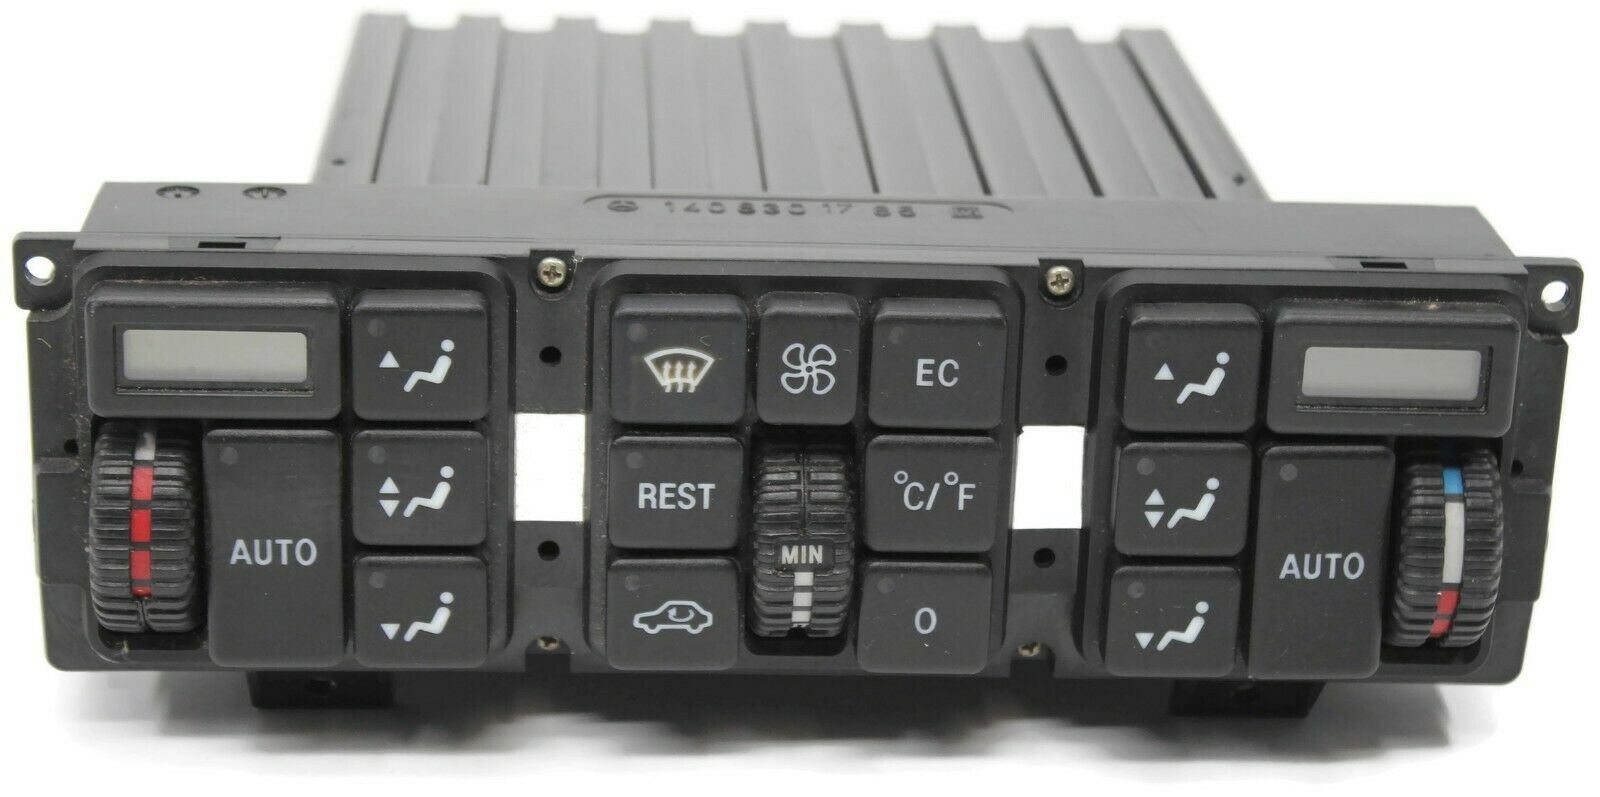 Used Mercedes-Benz S430 A/C & Heater Controls for Sale